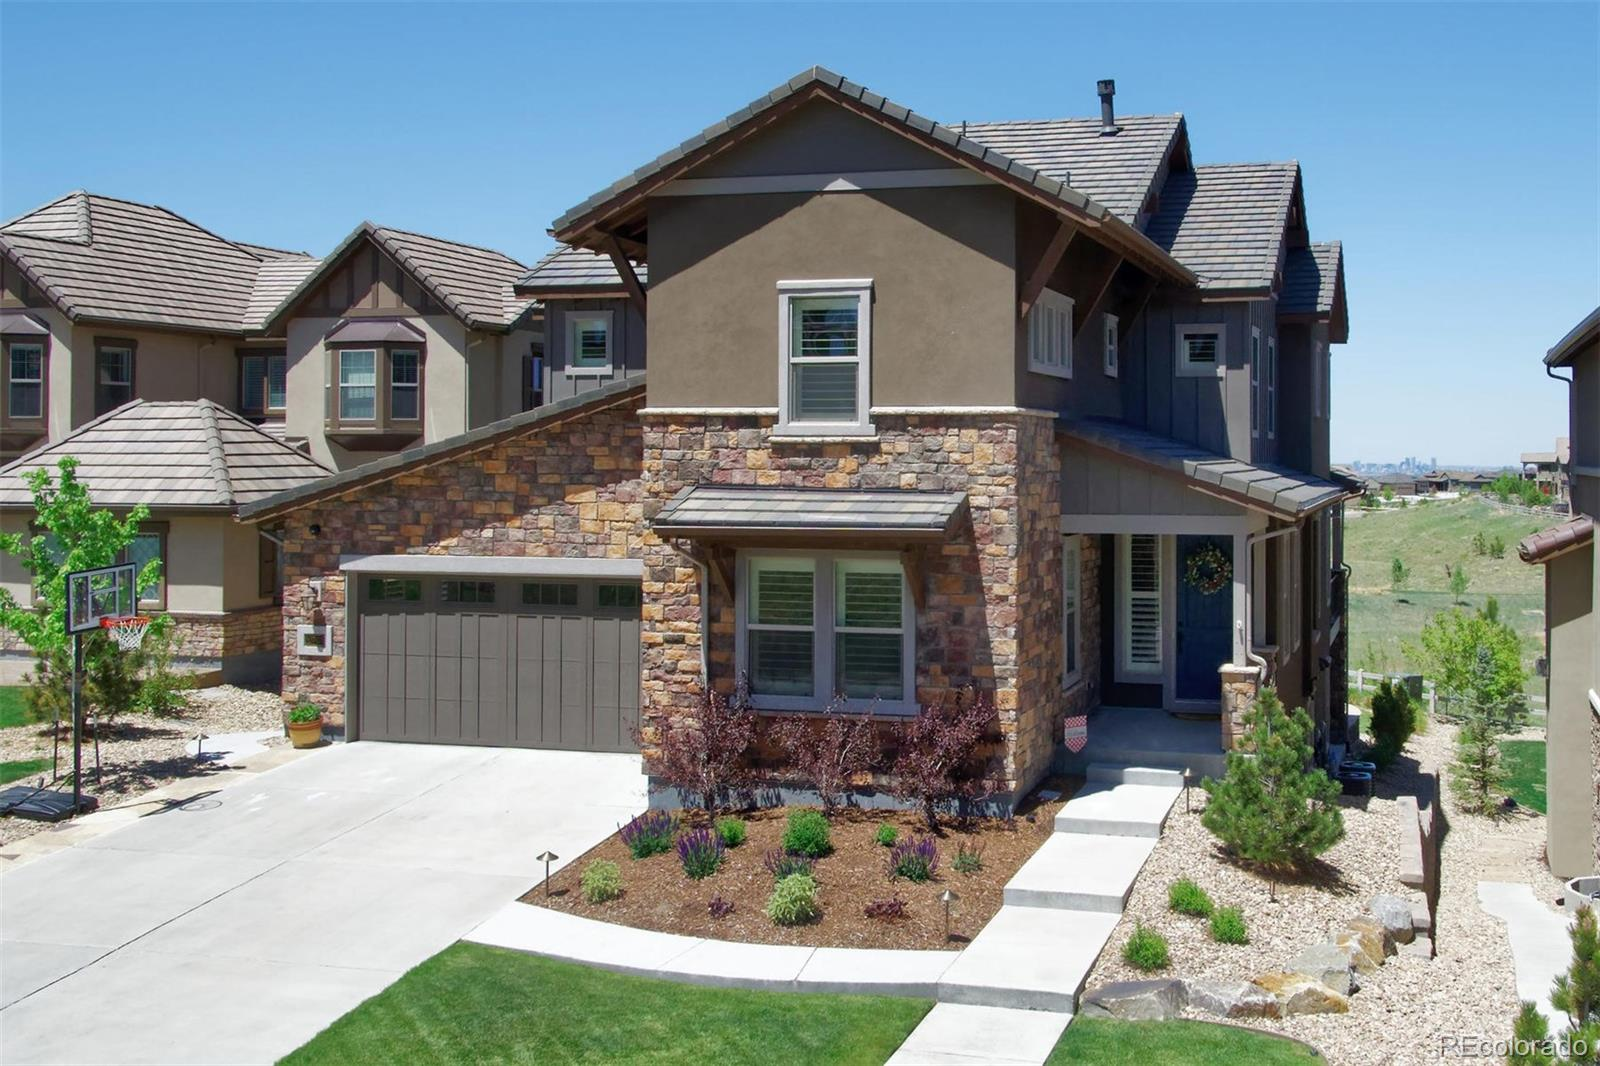 10763 Timberdash Avenue, Highlands Ranch, CO 80126 - Highlands Ranch, CO real estate listing